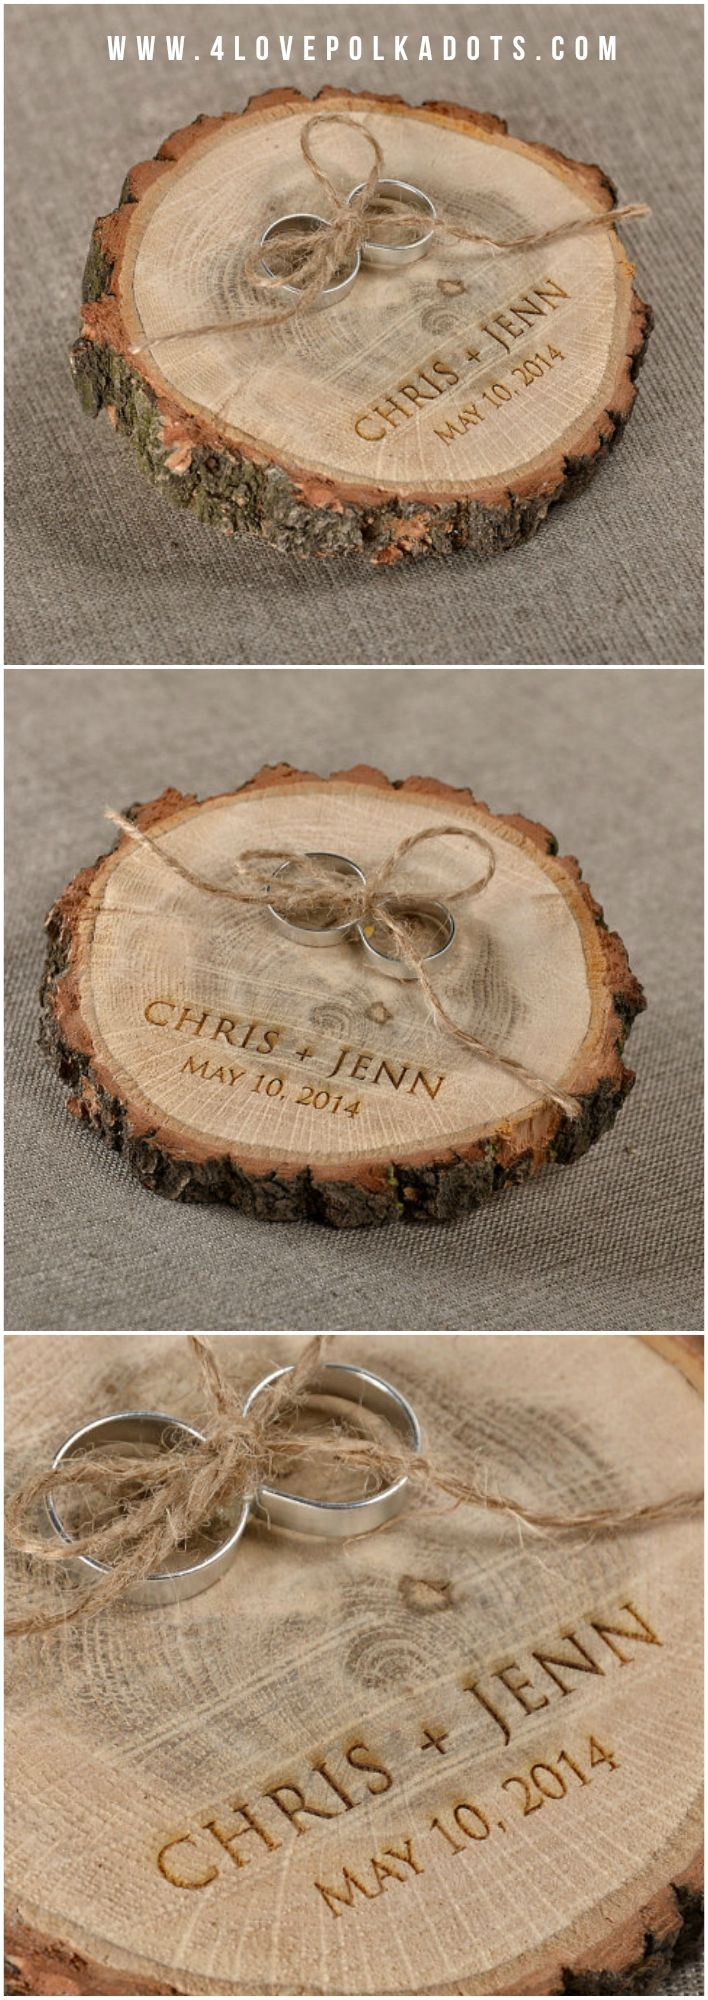 Tree stump ideas for wedding - Pyrography Wooden Tree Log Slice For The Rings On Your Wedding Day Our Large Wooden